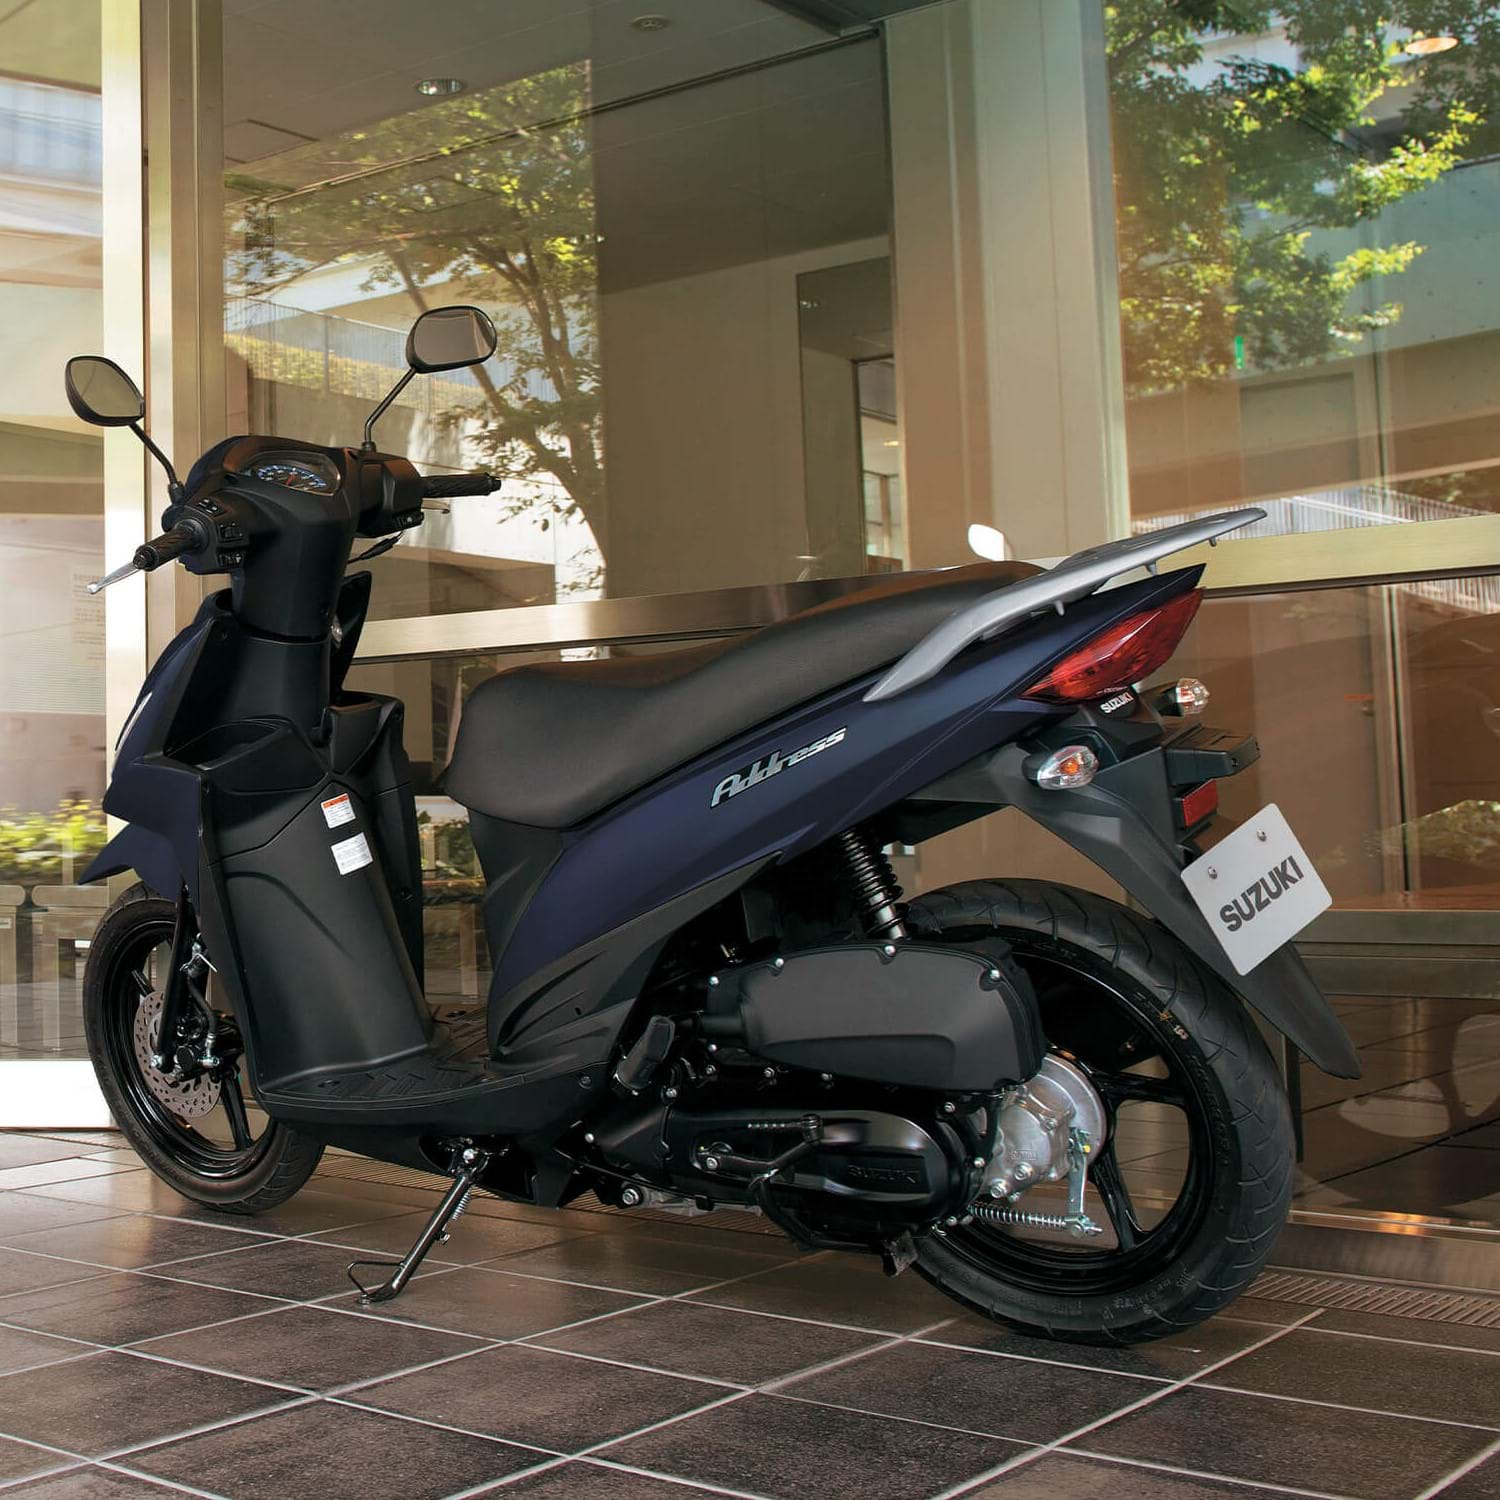 Suzuki Address scooter, parked outside office.